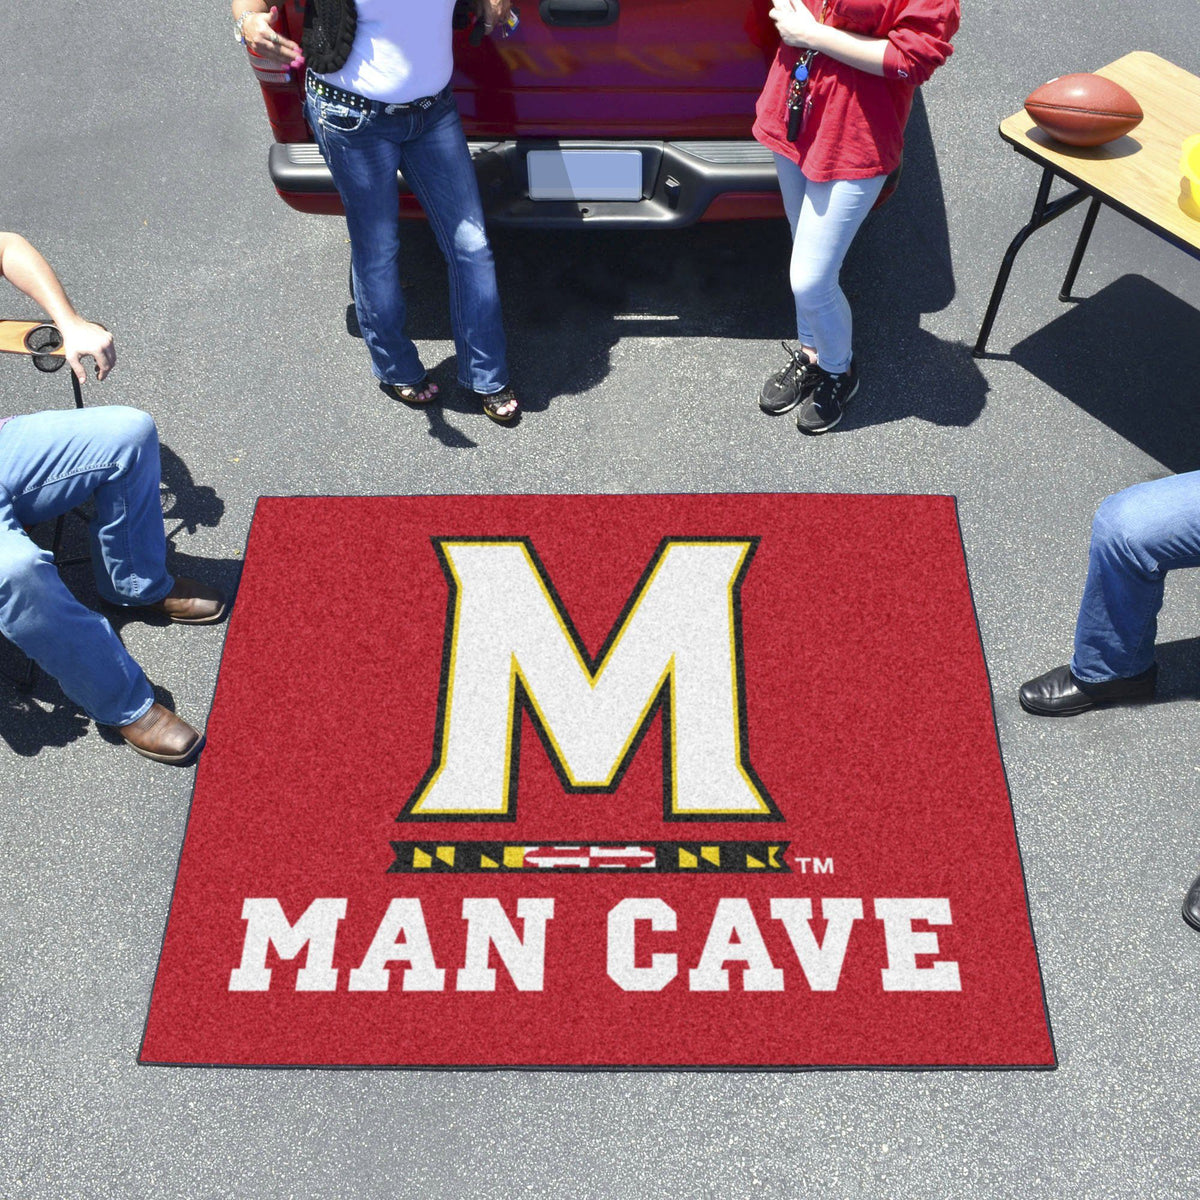 Collegiate - Man Cave Tailgater Collegiate Mats, Rectangular Mats, Man Cave Tailgater, Collegiate, Home Fan Mats Maryland